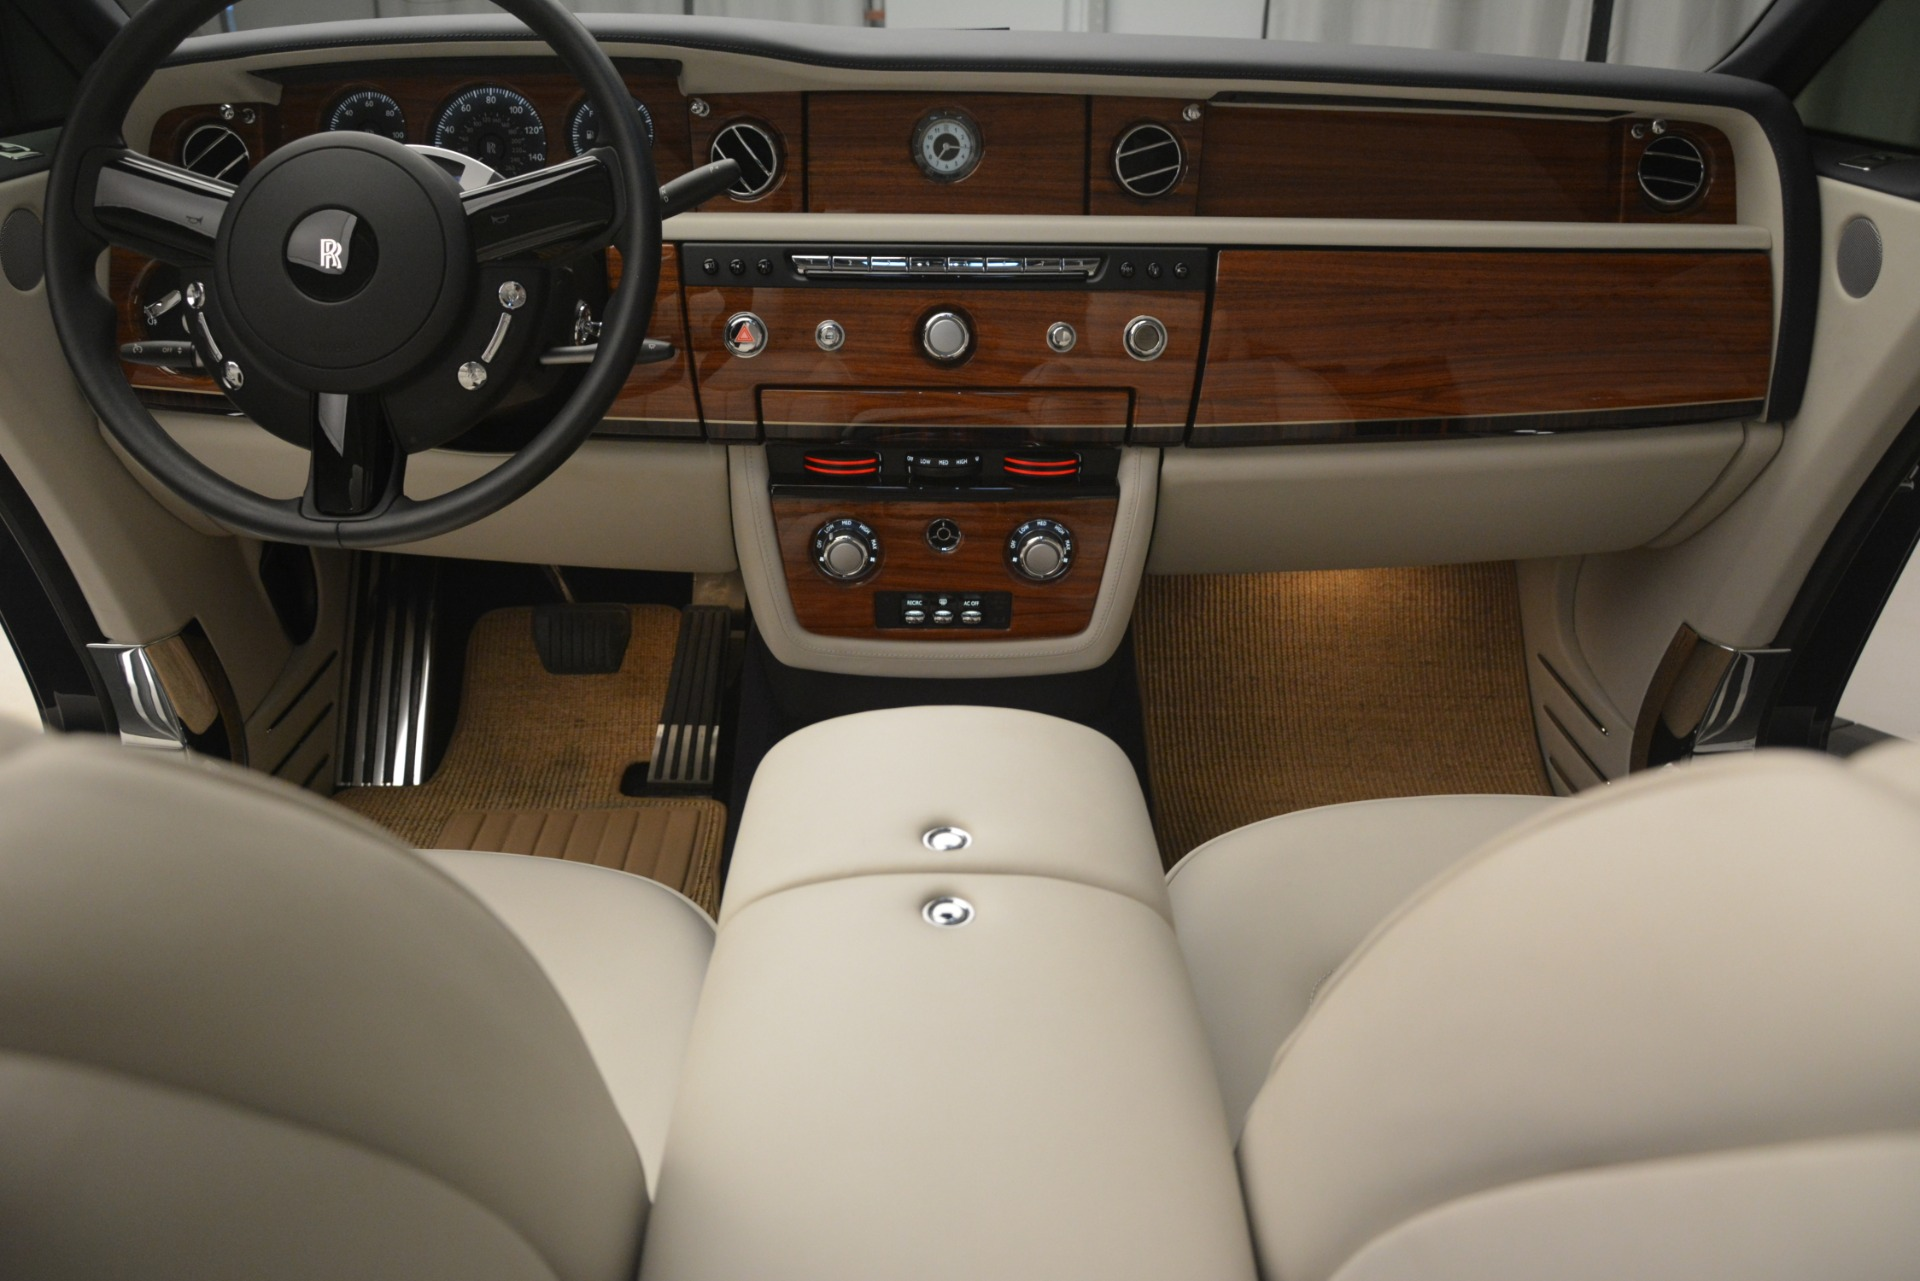 Used 2013 Rolls-Royce Phantom Drophead Coupe  For Sale In Westport, CT 2999_p34